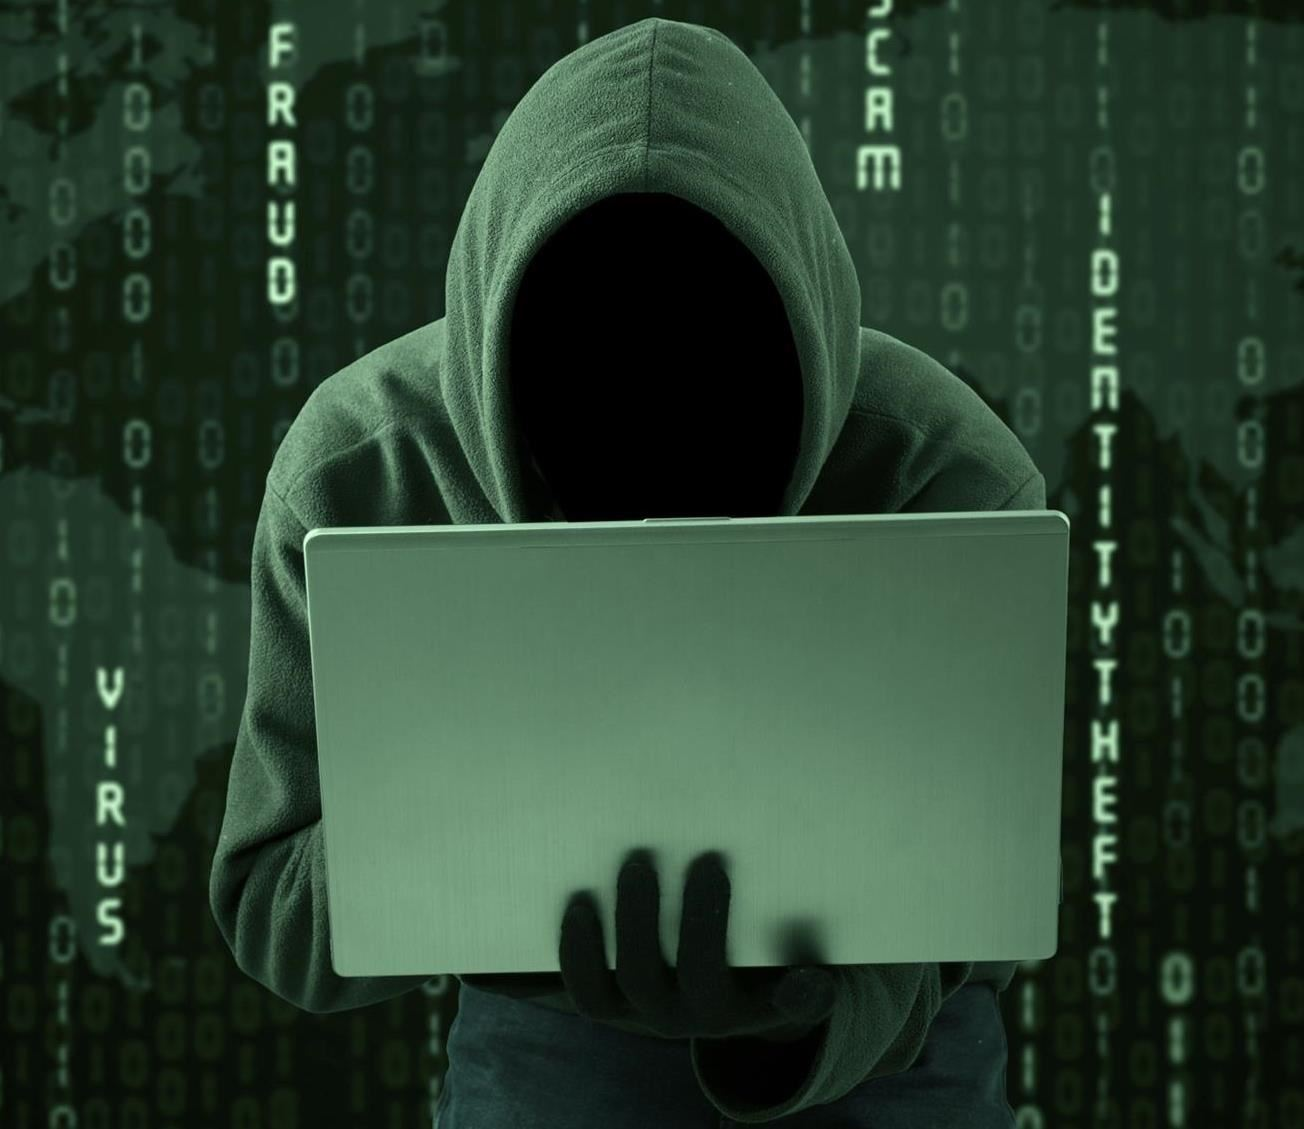 Hacking in the Media: Our Craft's Portrayal as Black Magic